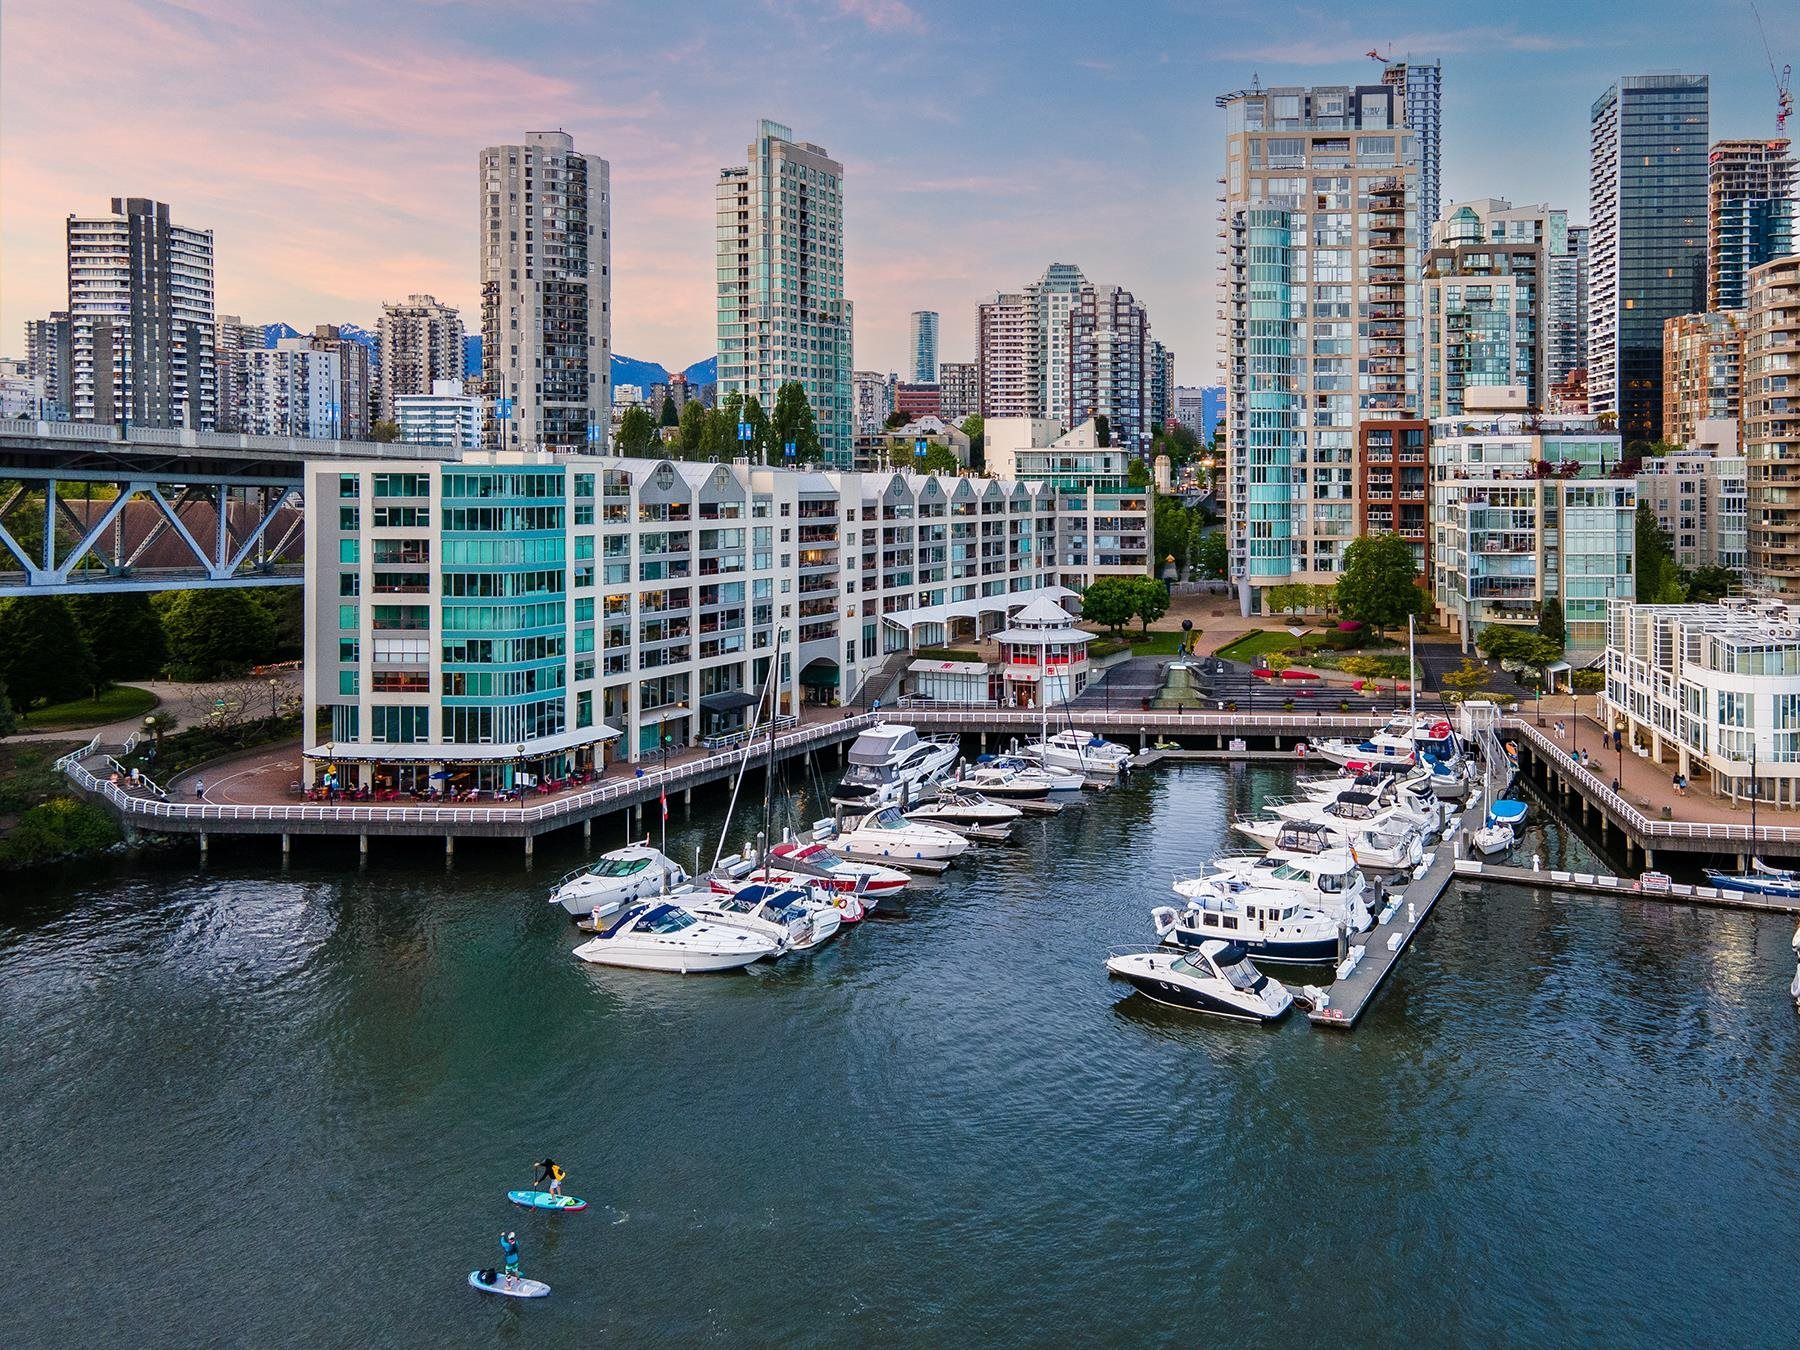 Main Photo: 1402 1000 BEACH AVENUE in Vancouver: Yaletown Condo for sale (Vancouver West)  : MLS®# R2619281